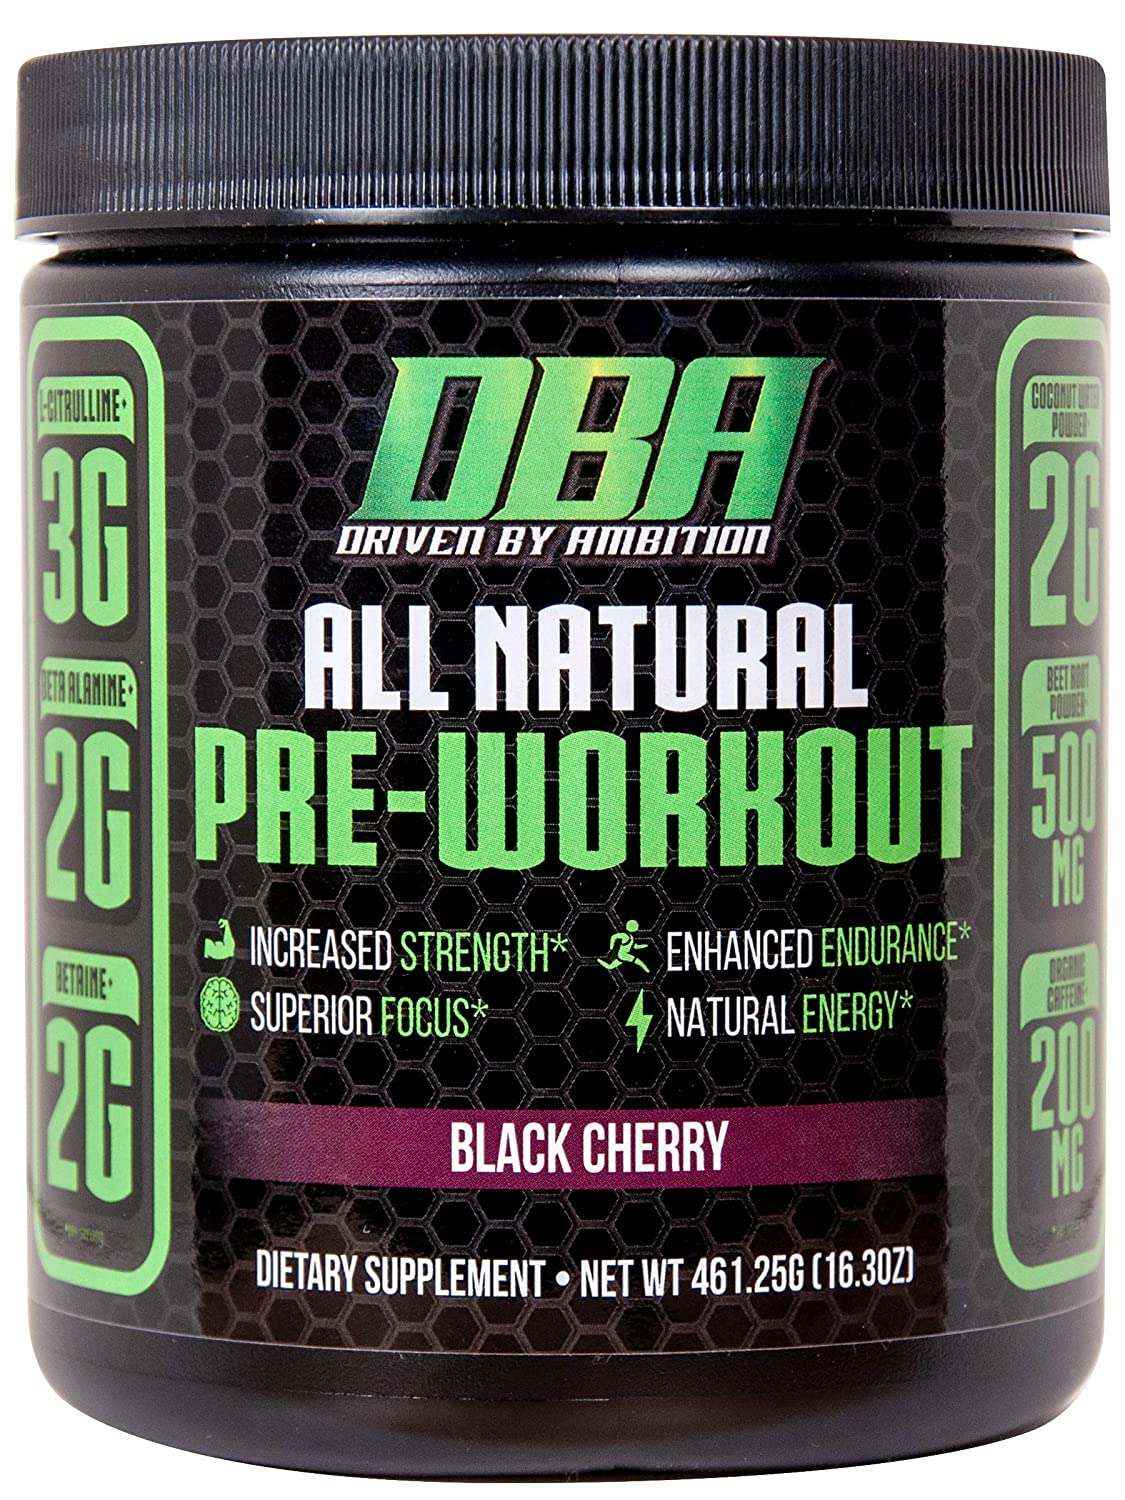 DBA Performance All Natural Pre Workout Enhanced Strength, Focus, Hydration, Energy. Vegan Friendly, No Artificial Ingredients, Non-GMO 25 Servings Black Cherry